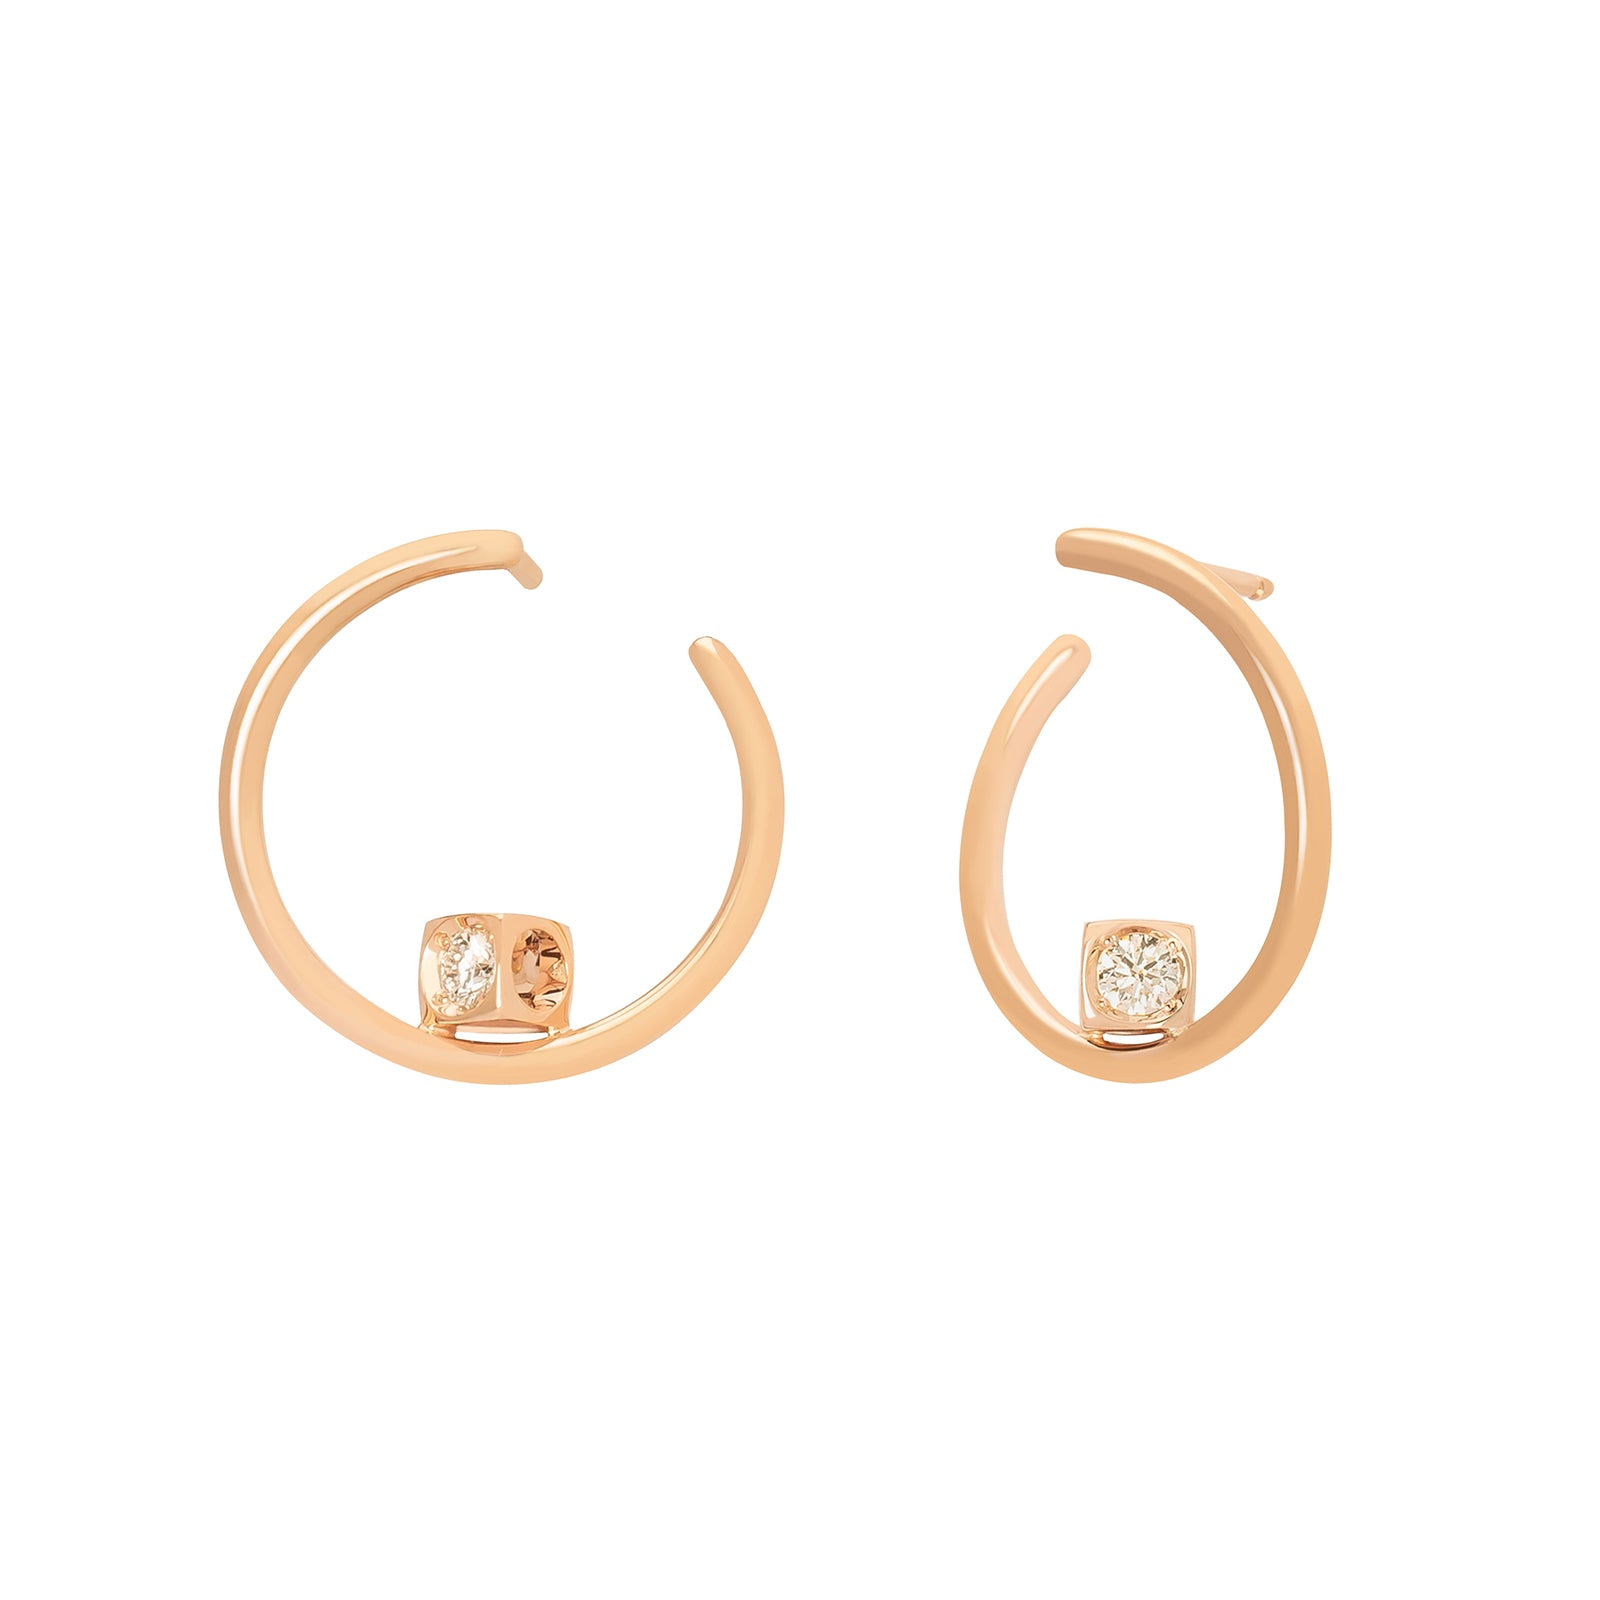 Dinh Van Le Cube Diamant Hoops - Rose Gold - Earrings - Broken English Jewelry